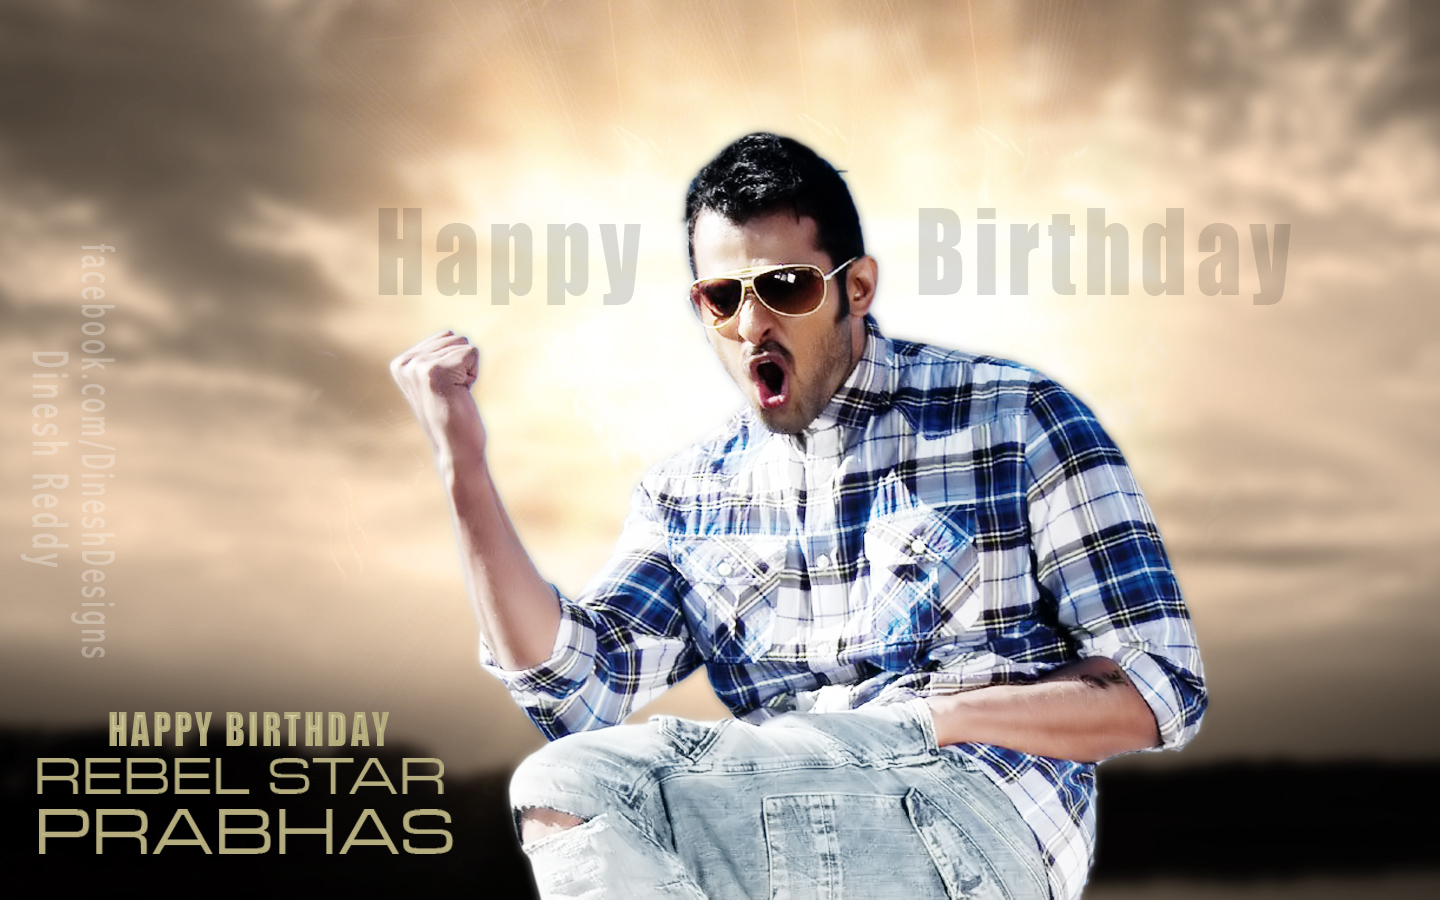 Stylish Prabhas Hq Wallpaper In Rebel: Dinesh Designs: Rebel Star Prabhas Birthday Wallpapers